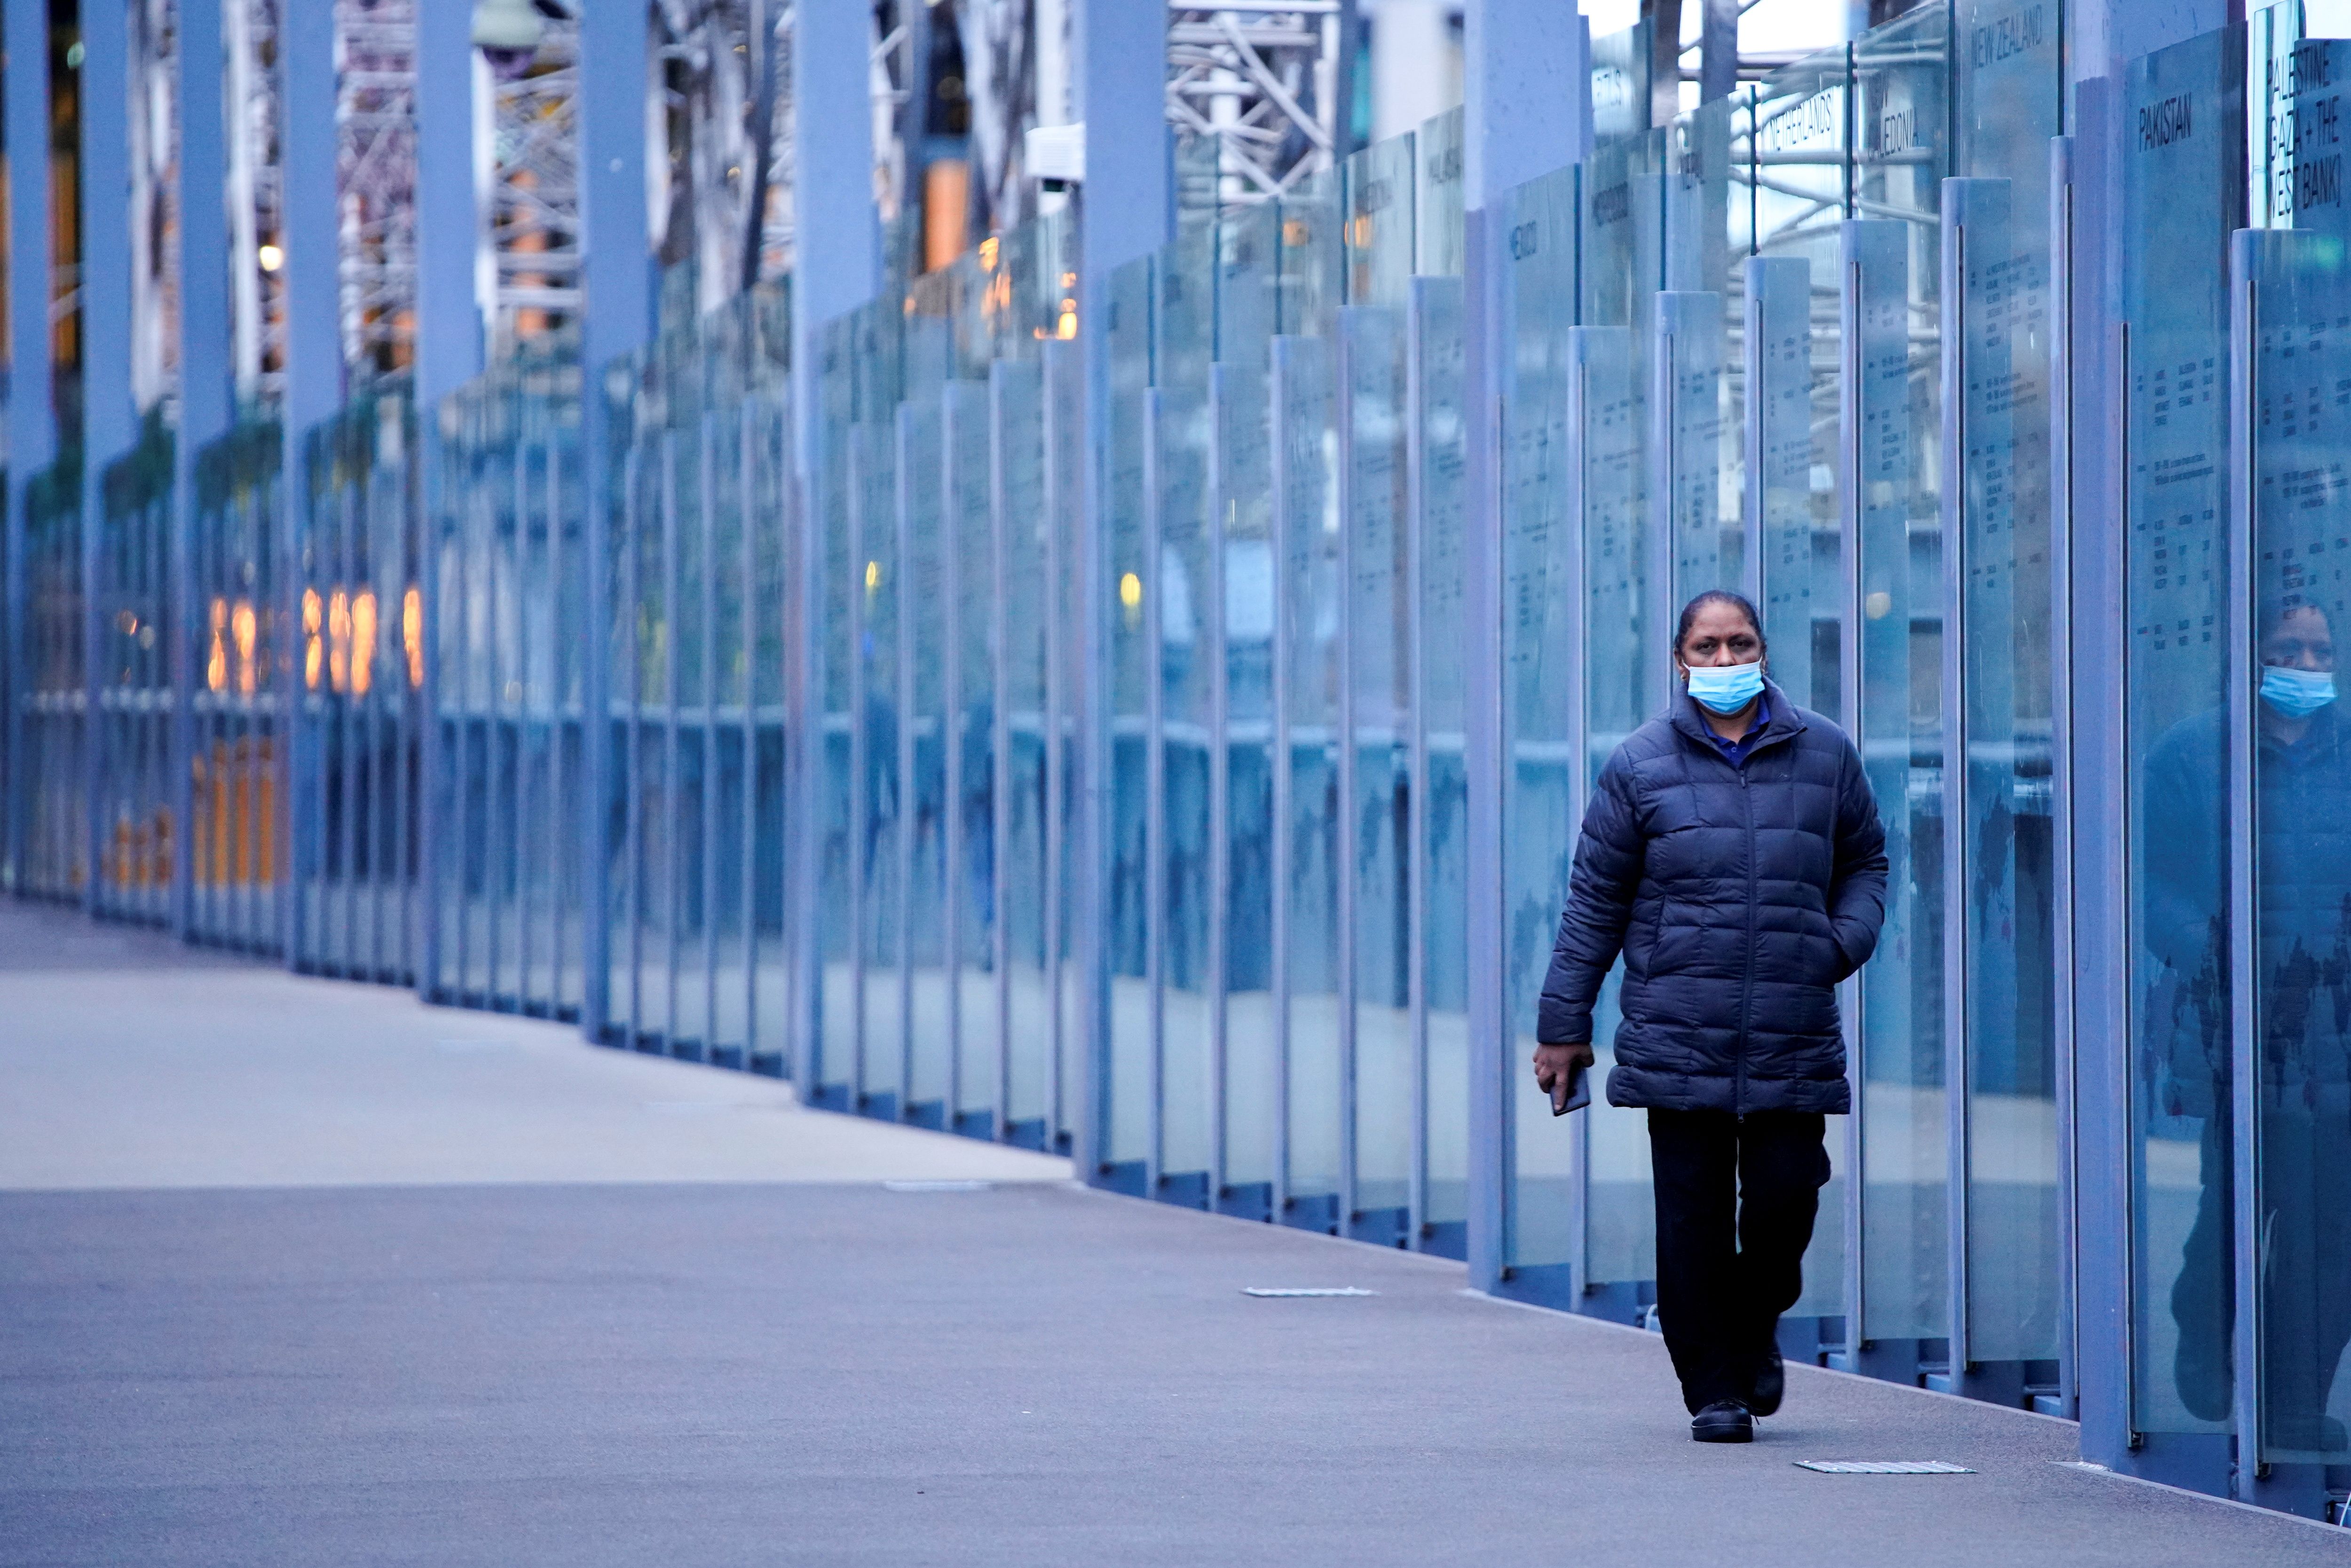 A woman wearing a protective face mask walks along a deserted city bridge during morning commute hours on the first day of a lockdown as the state of Victoria looks to curb the spread of a coronavirus disease (COVID-19) outbreak in Melbourne, Australia, July 16, 2021.  REUTERS/Sandra Sanders